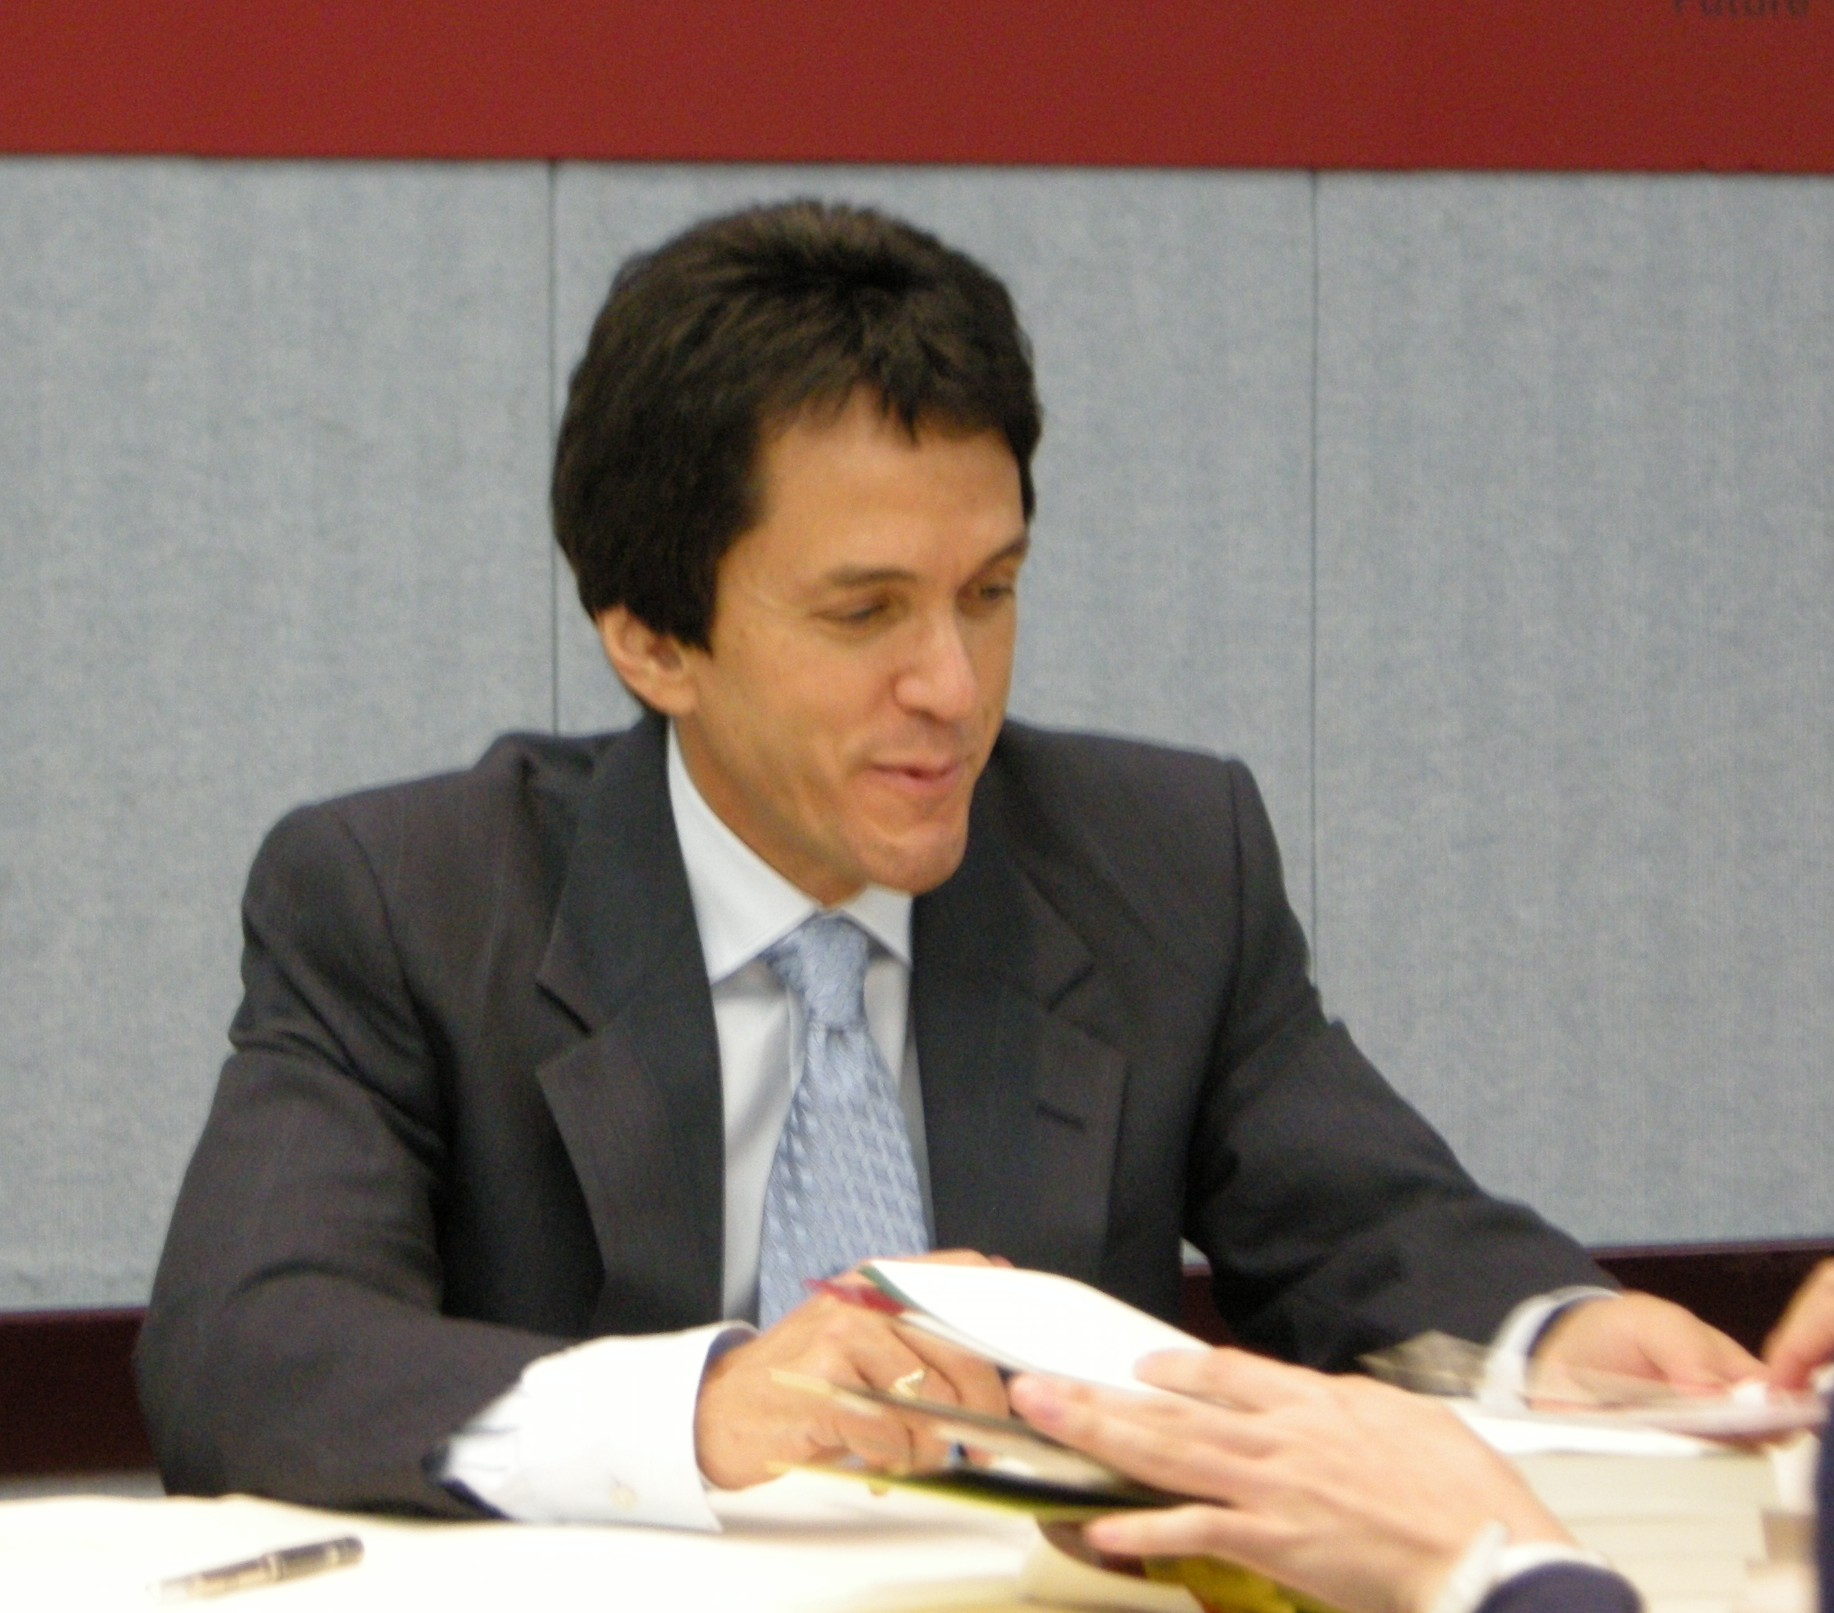 Albom autographing for his fans after a lecture of his in 2010